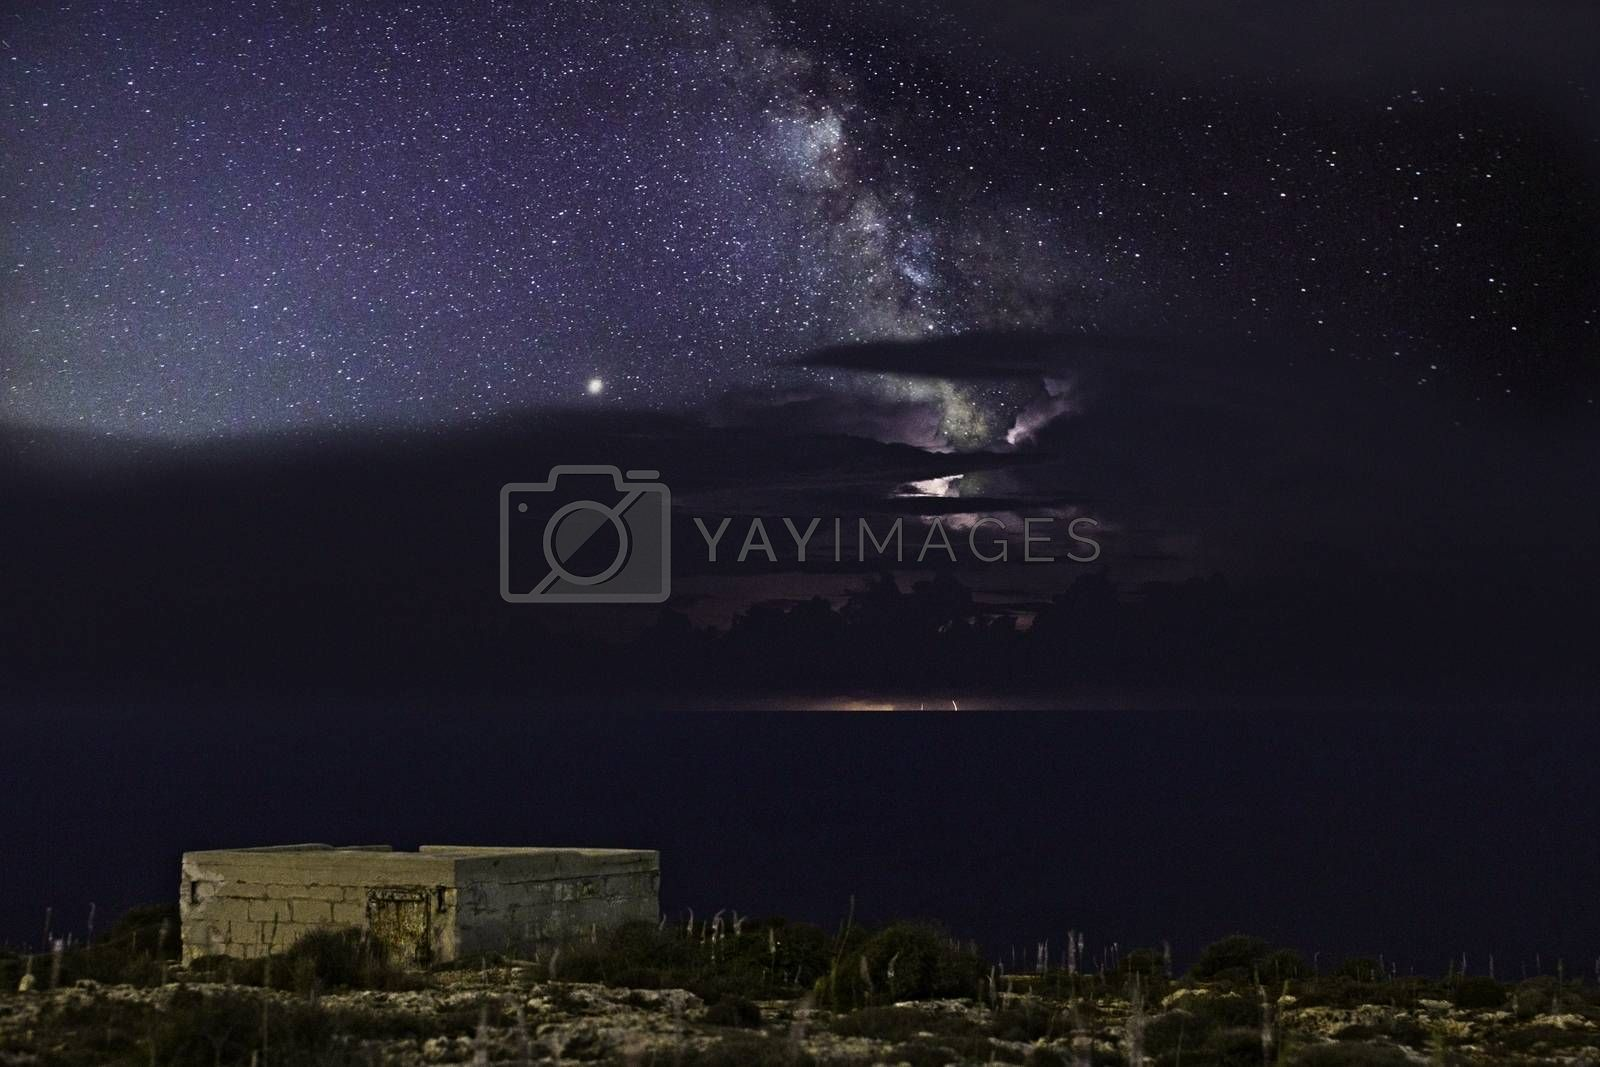 The Milky Way rises from behind a distant storm cell over the horizon